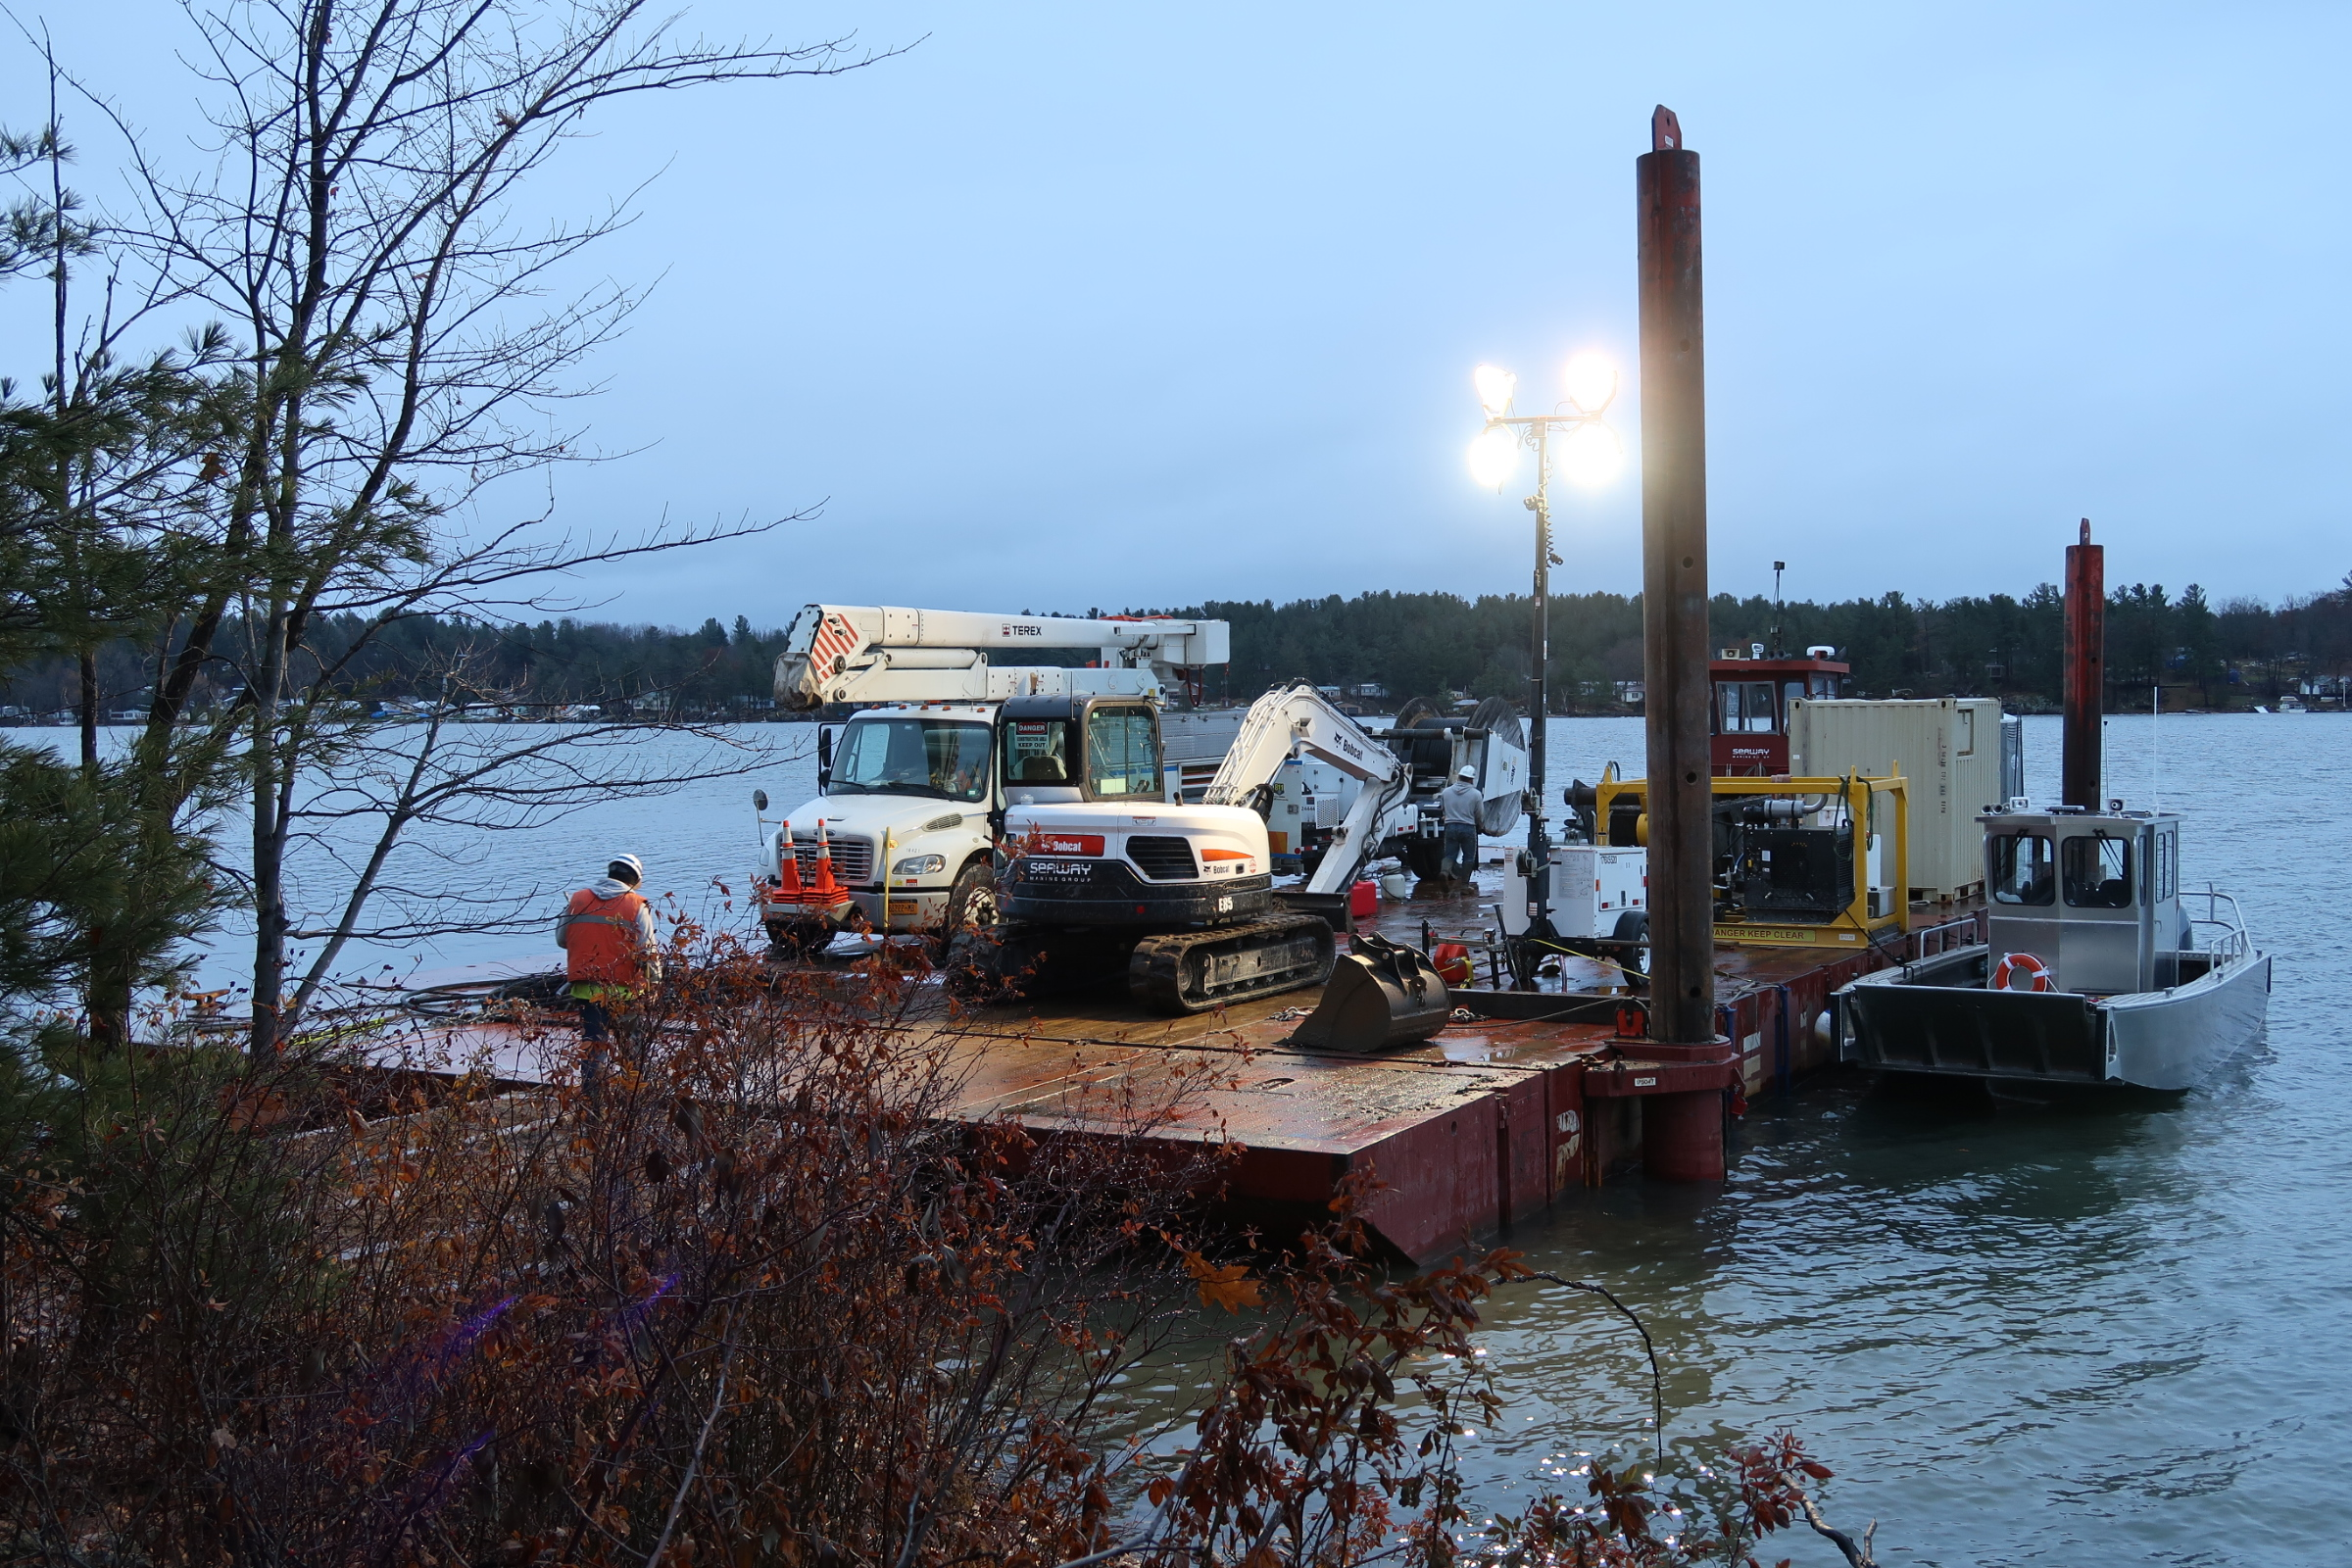 NATIONAL GRID - ST. LAWRENCE RIVER & ERIE CANALMARINE TRANSPORTATION, CABLE LAYING, SPECIAL ACCESS ASSISTANCE